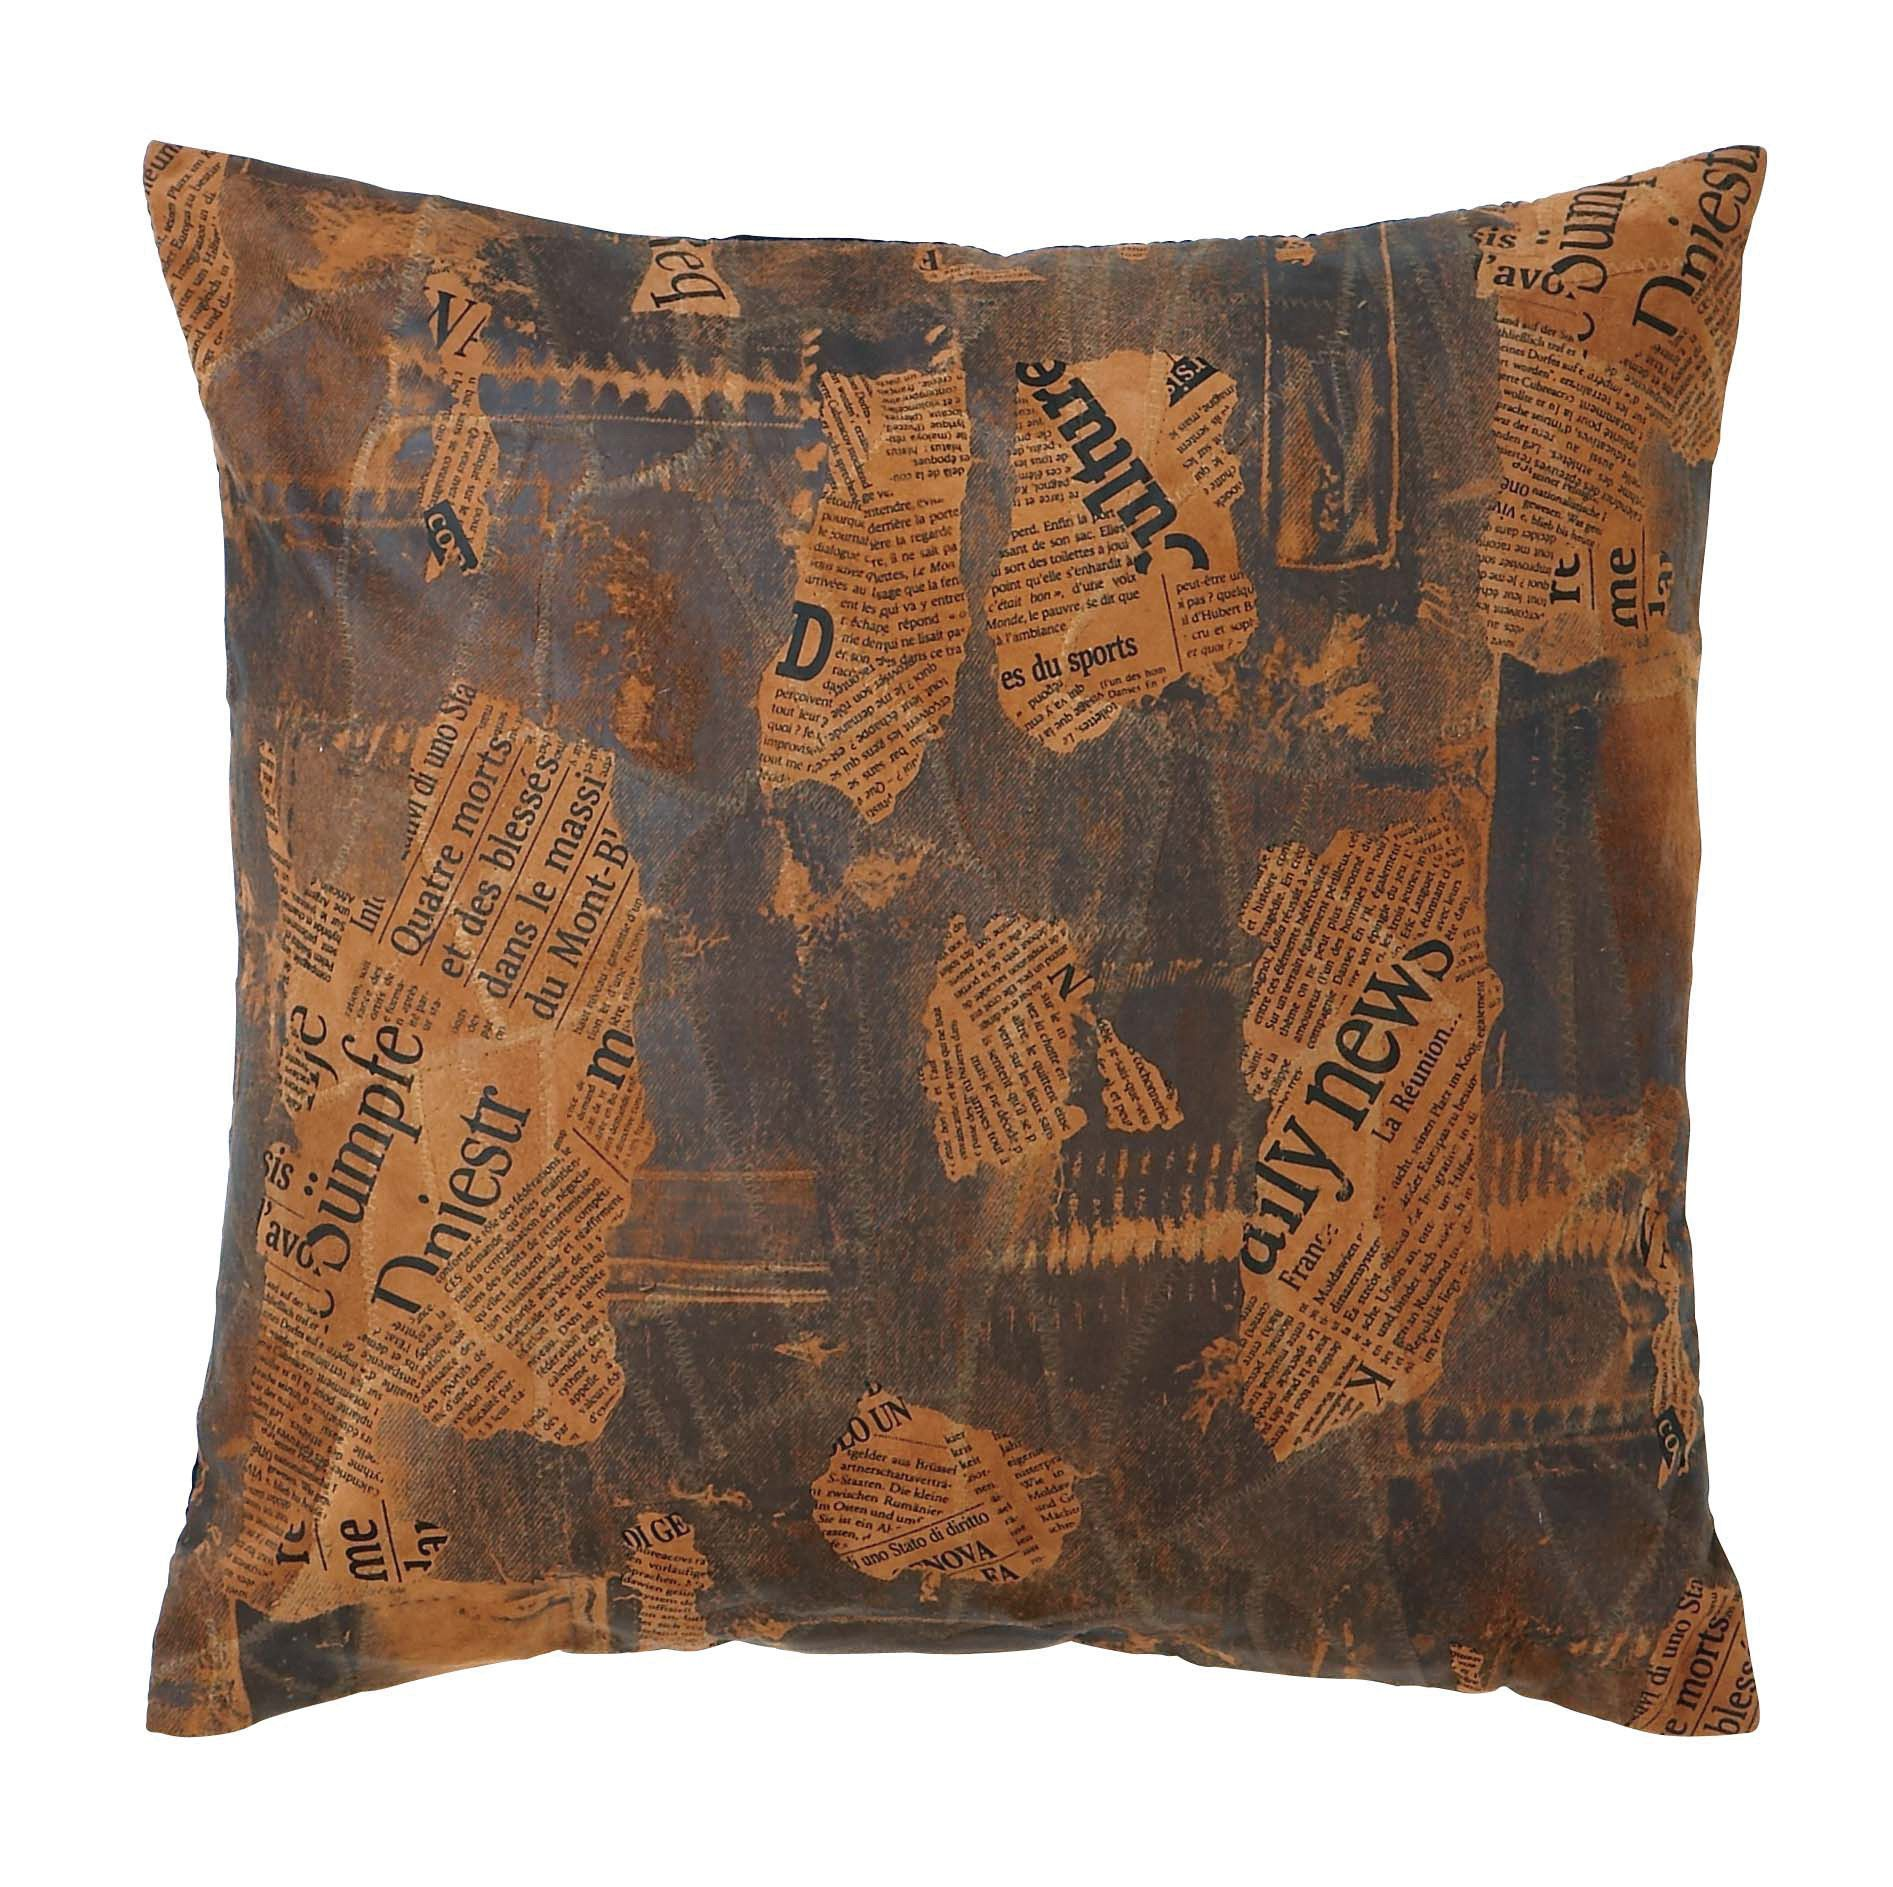 black colors pillow that room a living colour what furniture fabric for chairs of best decorating sofa walls pillows sensational mixing throw colours full brown with decor leather size go couch ideas